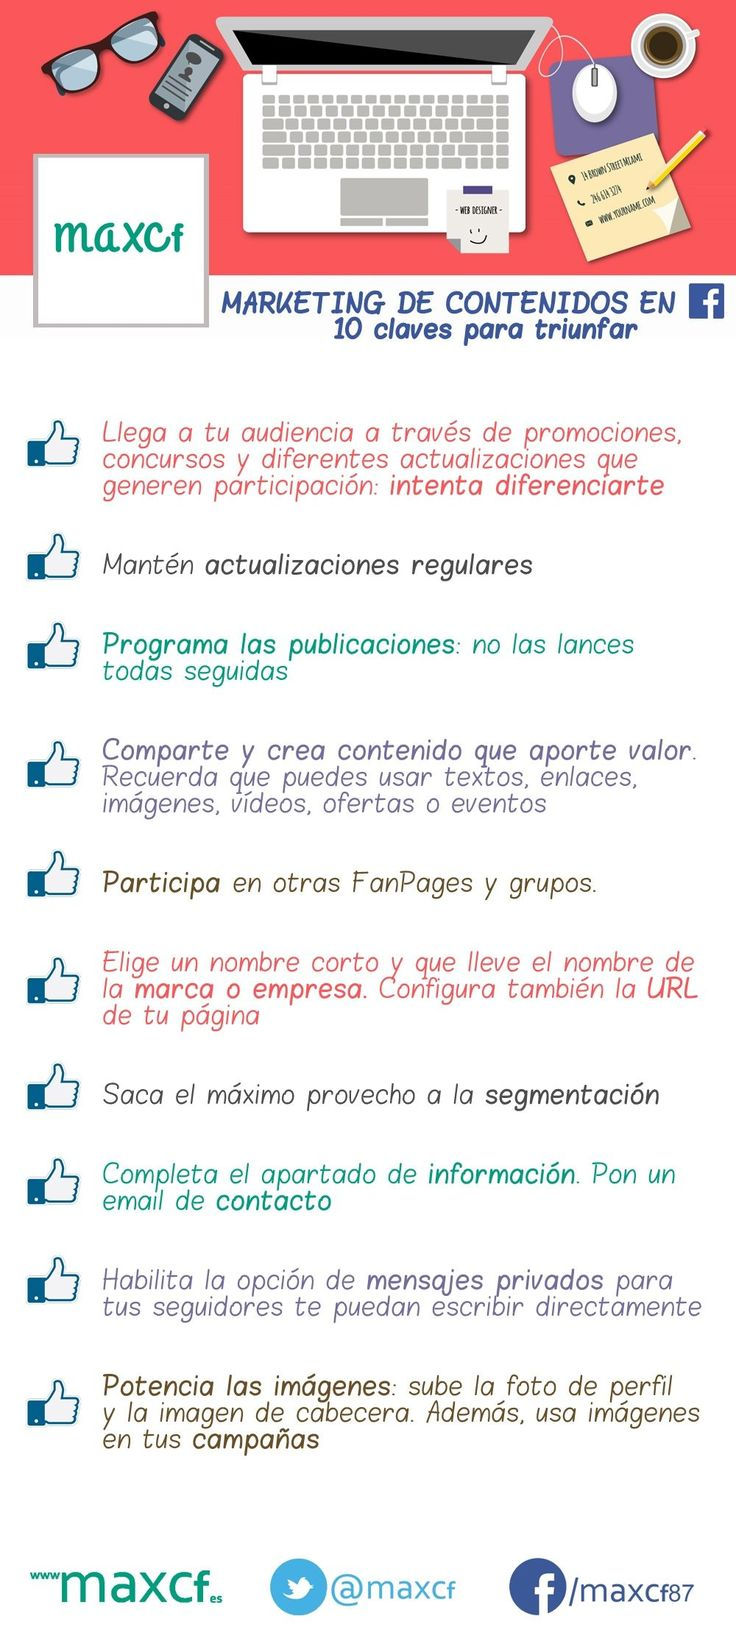 10 claves para el marketing de contenidos en FaceBook